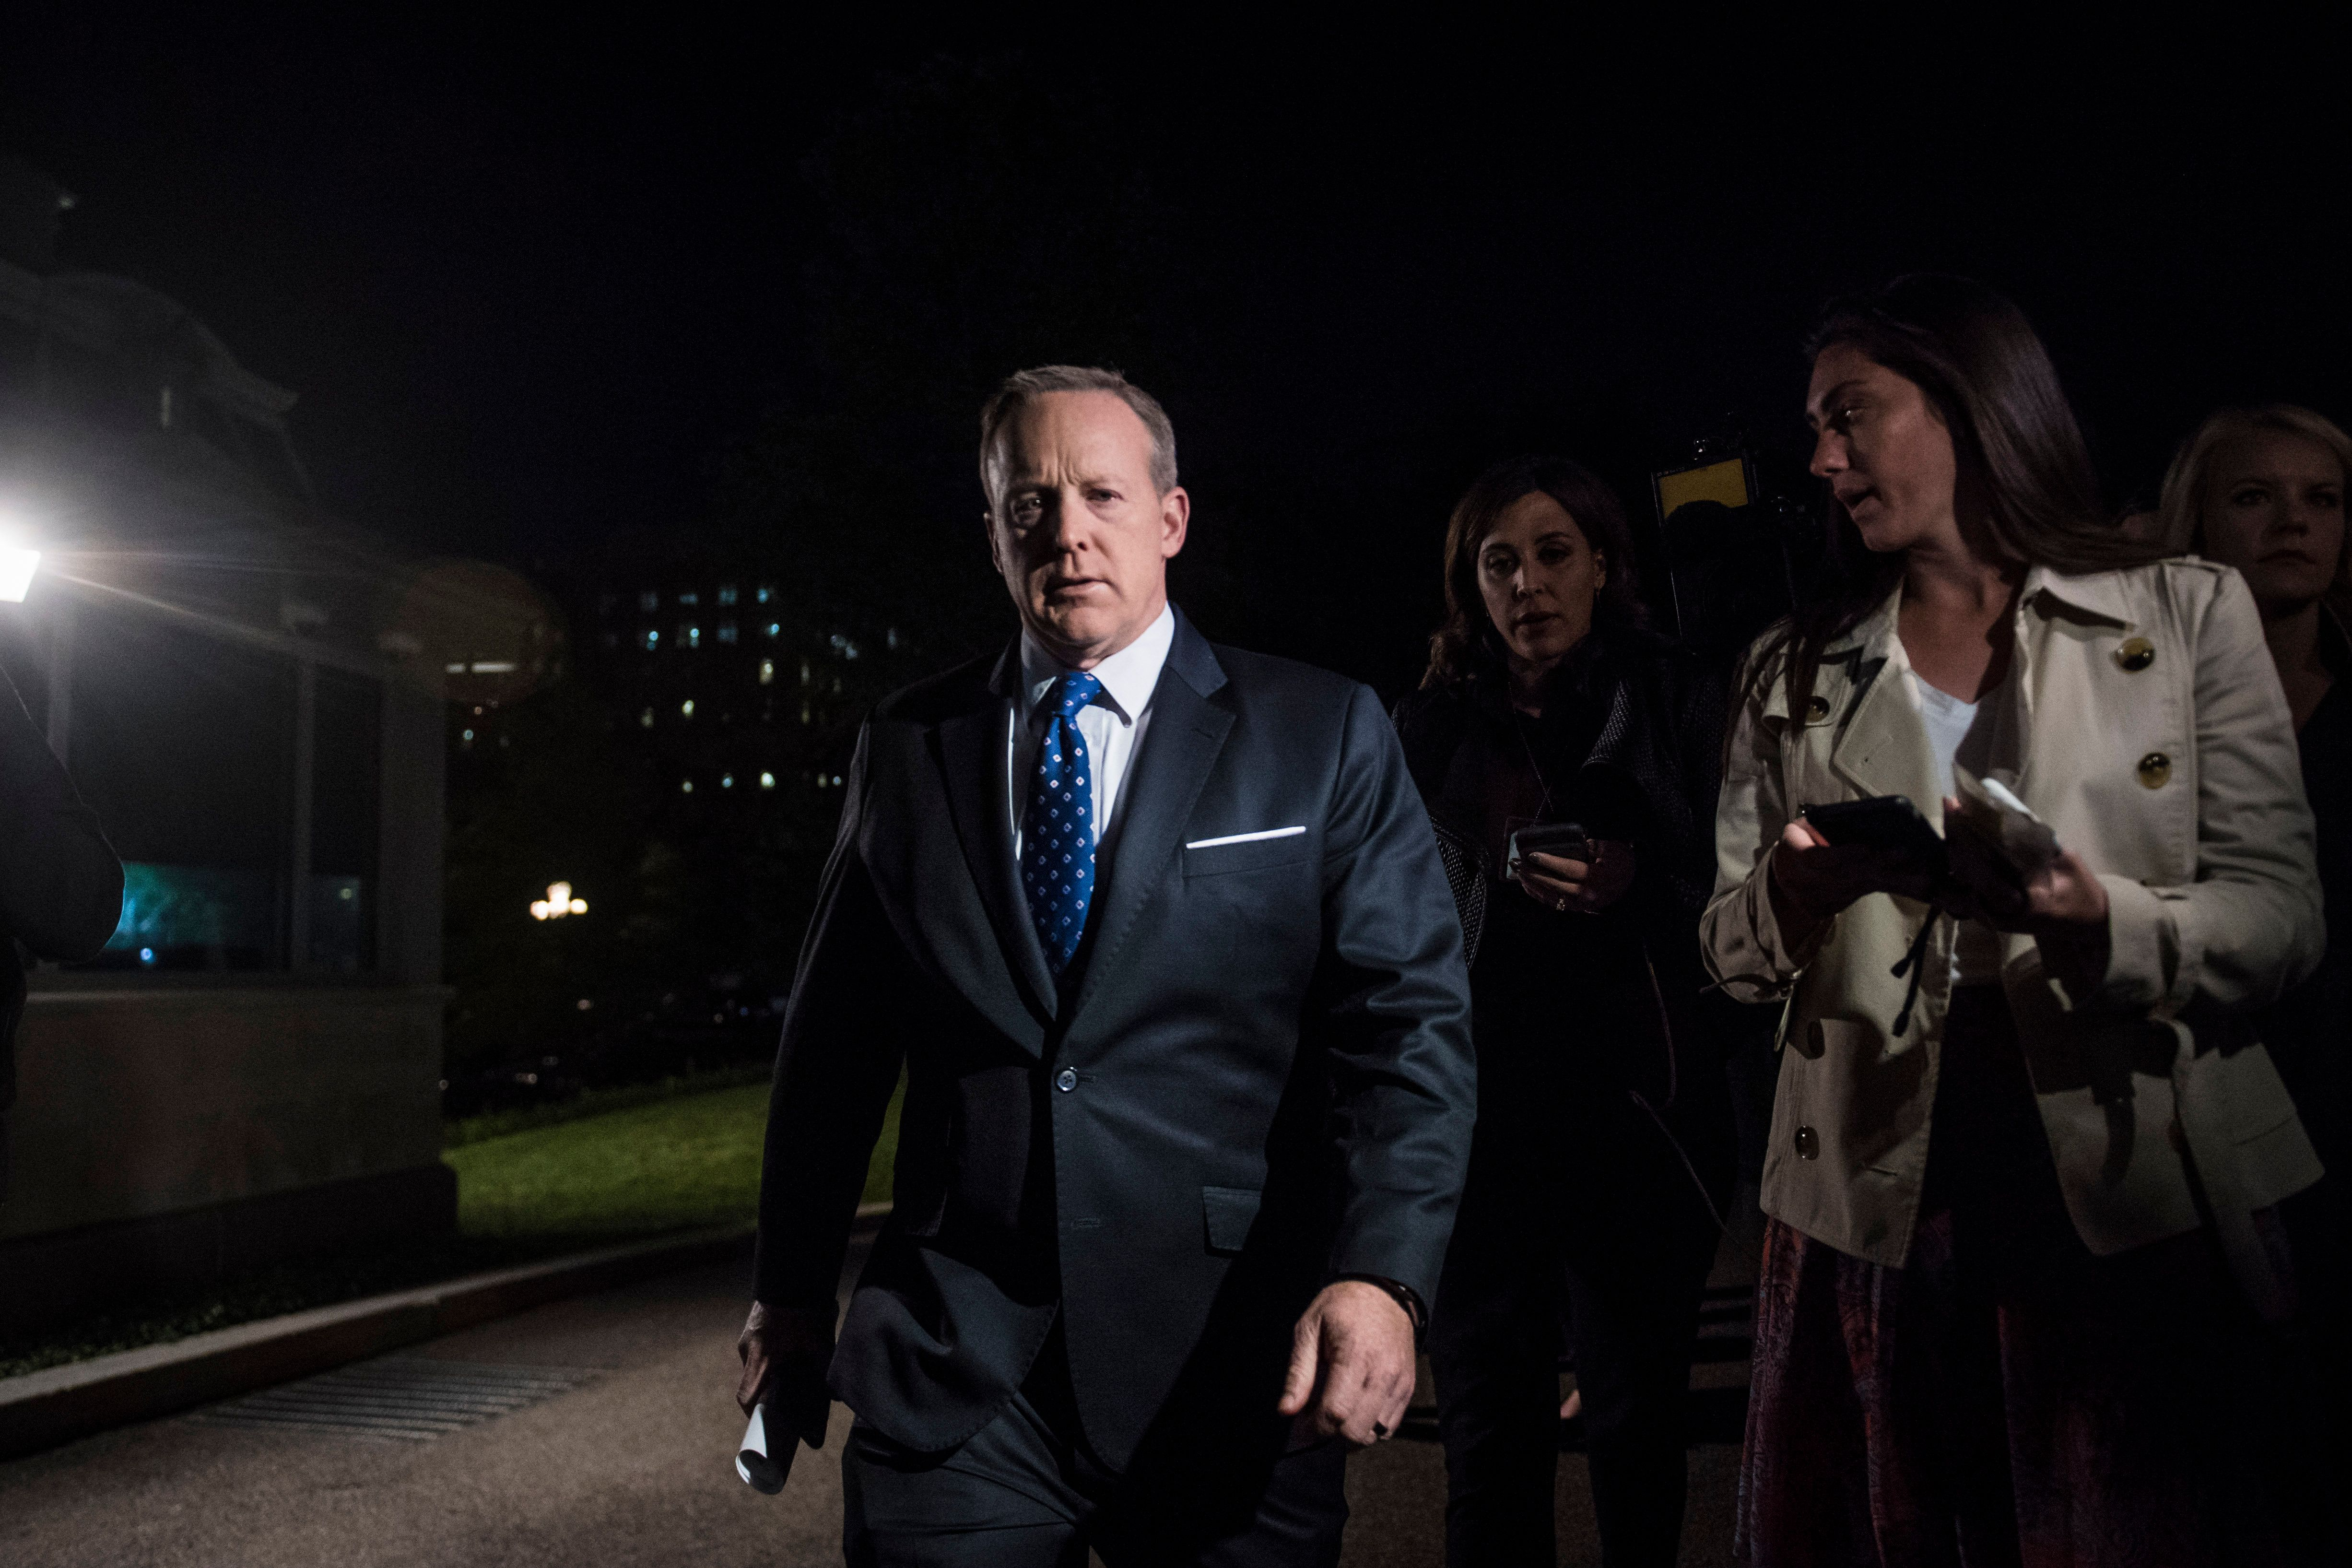 Sean Spicer Hid In The Bushes As White House Tried Spinning James Comey